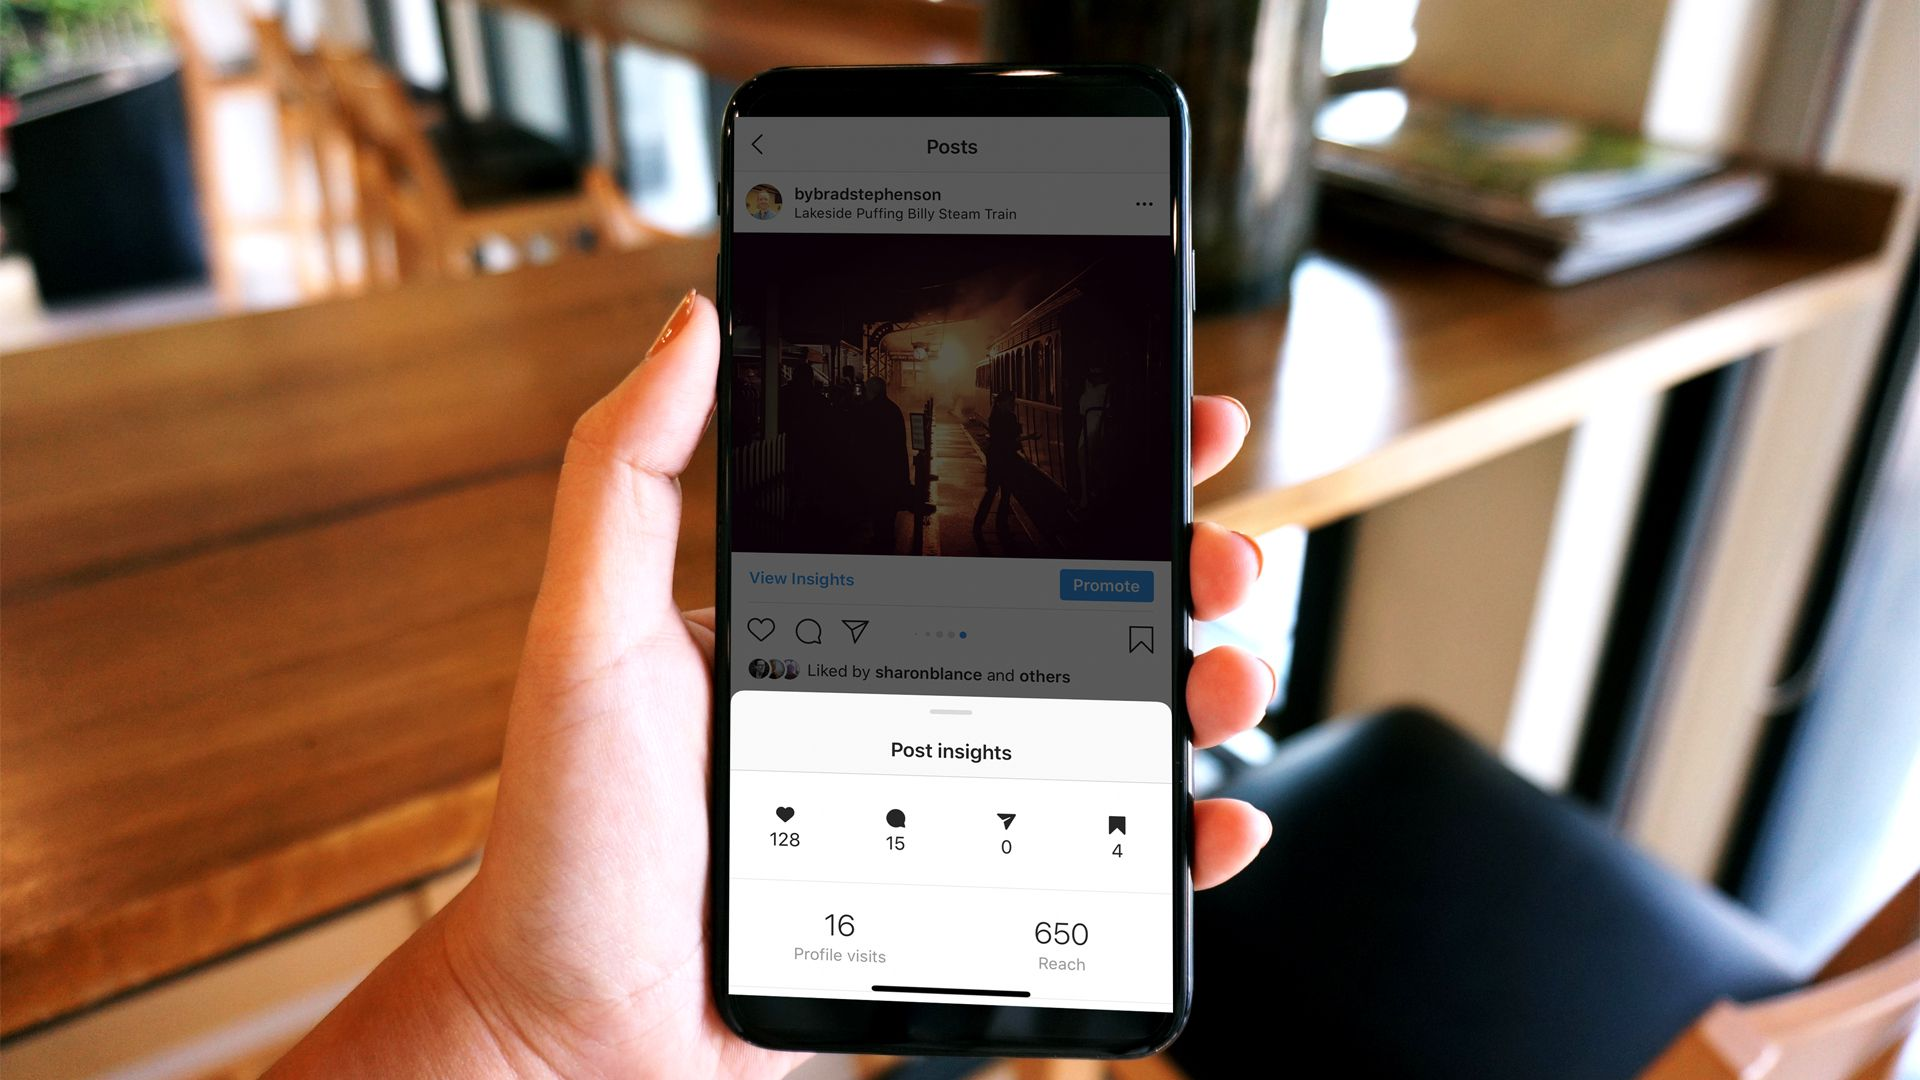 How to Check Who Saved Your Instagram Posts